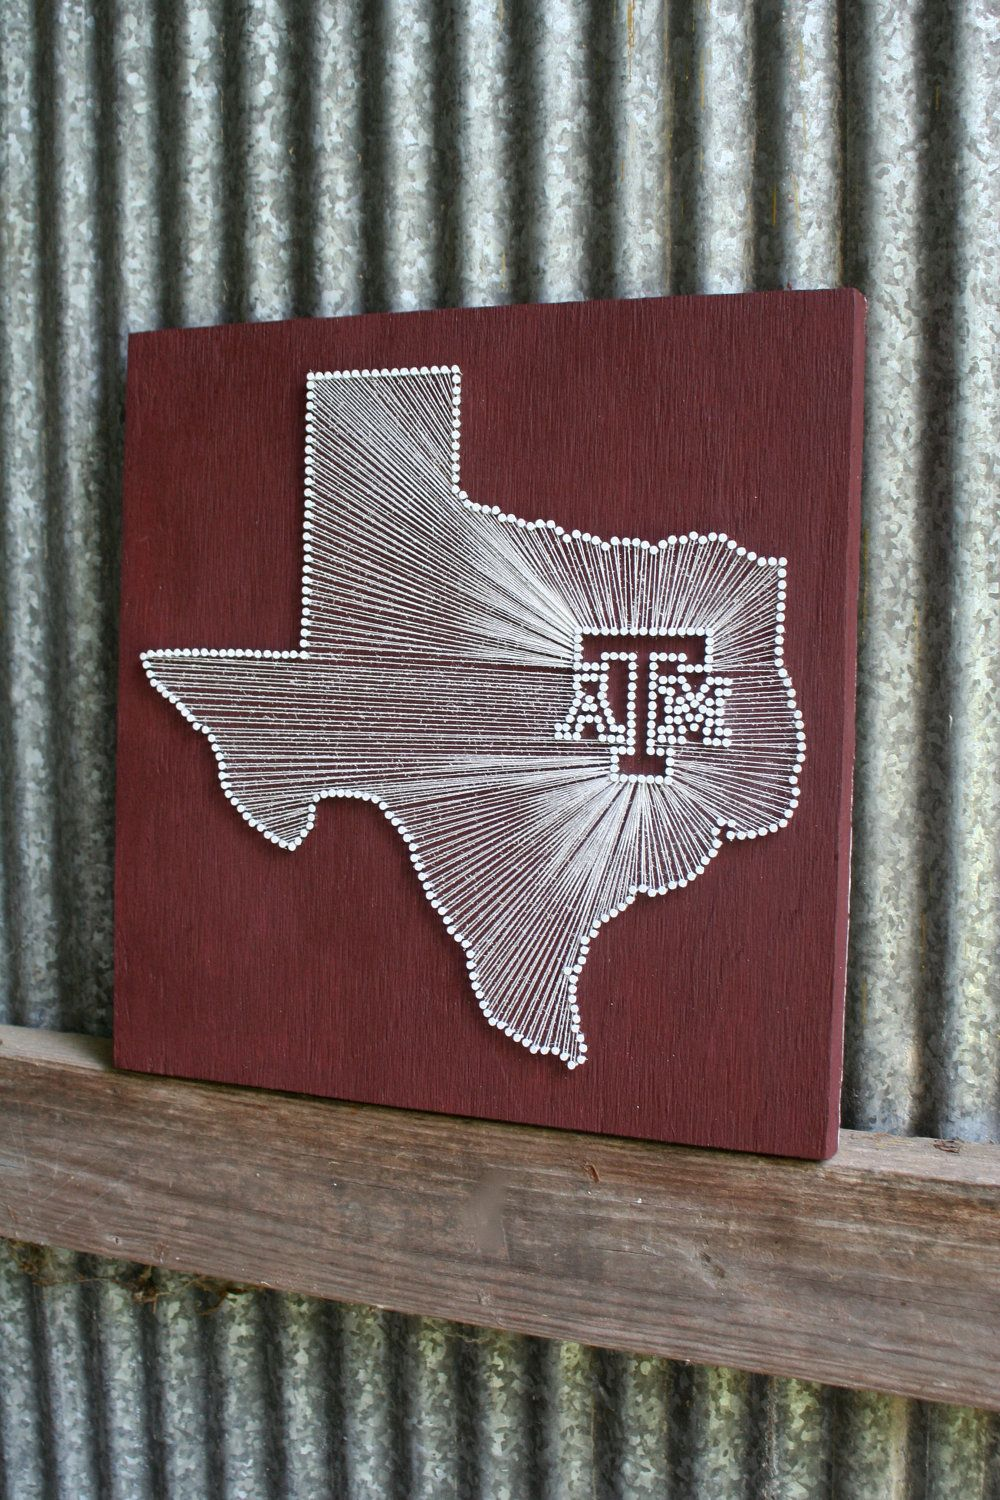 How To Do String Art Texas String Art Wooden Stained Boarded With Red White And Blue